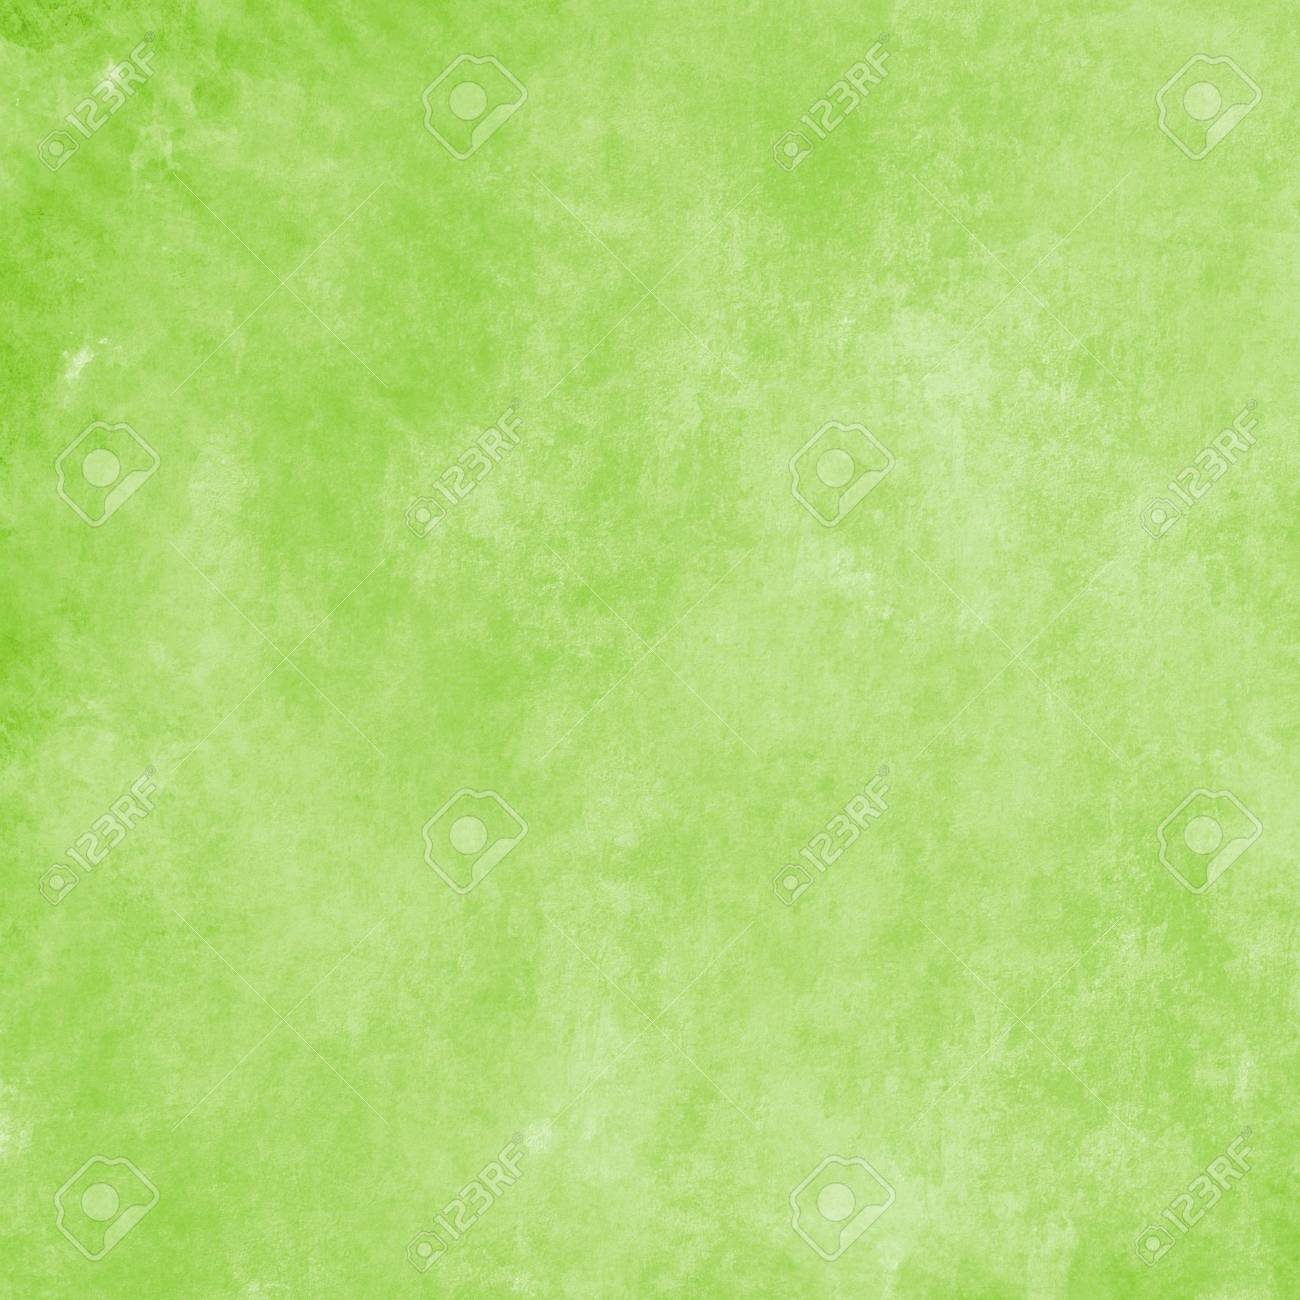 abstract background - 43849242